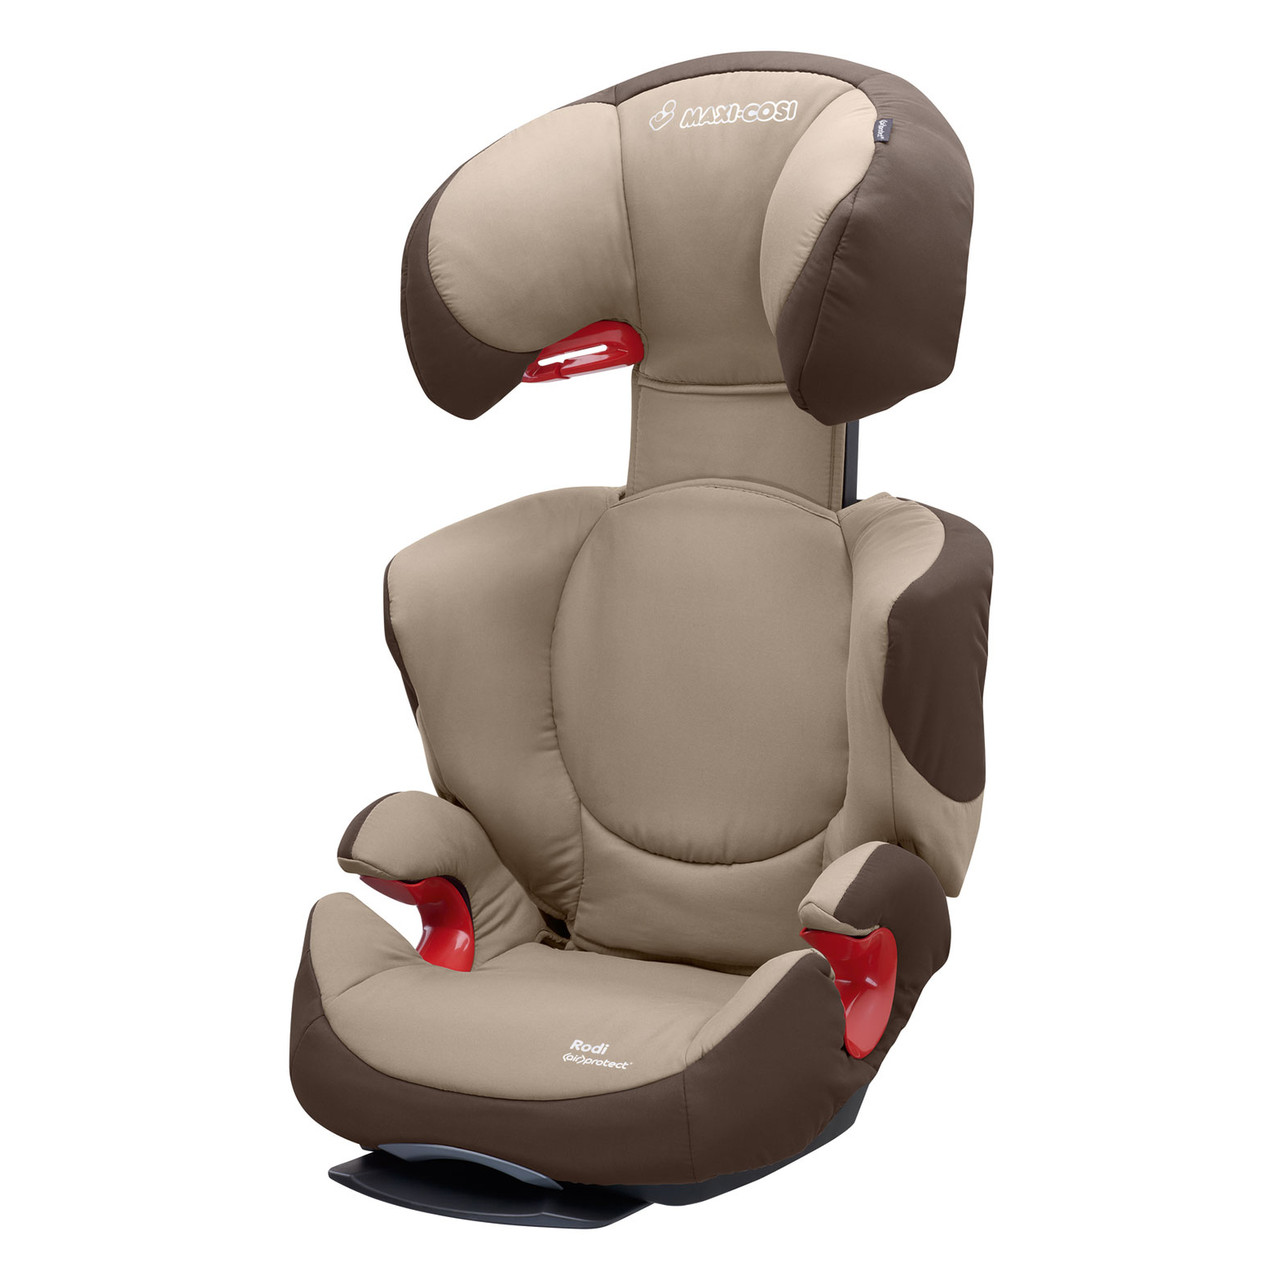 Автокресло Maxi Cosi Rodi AP 15-36 кг (75105350) Walnut Brown (коричневый)